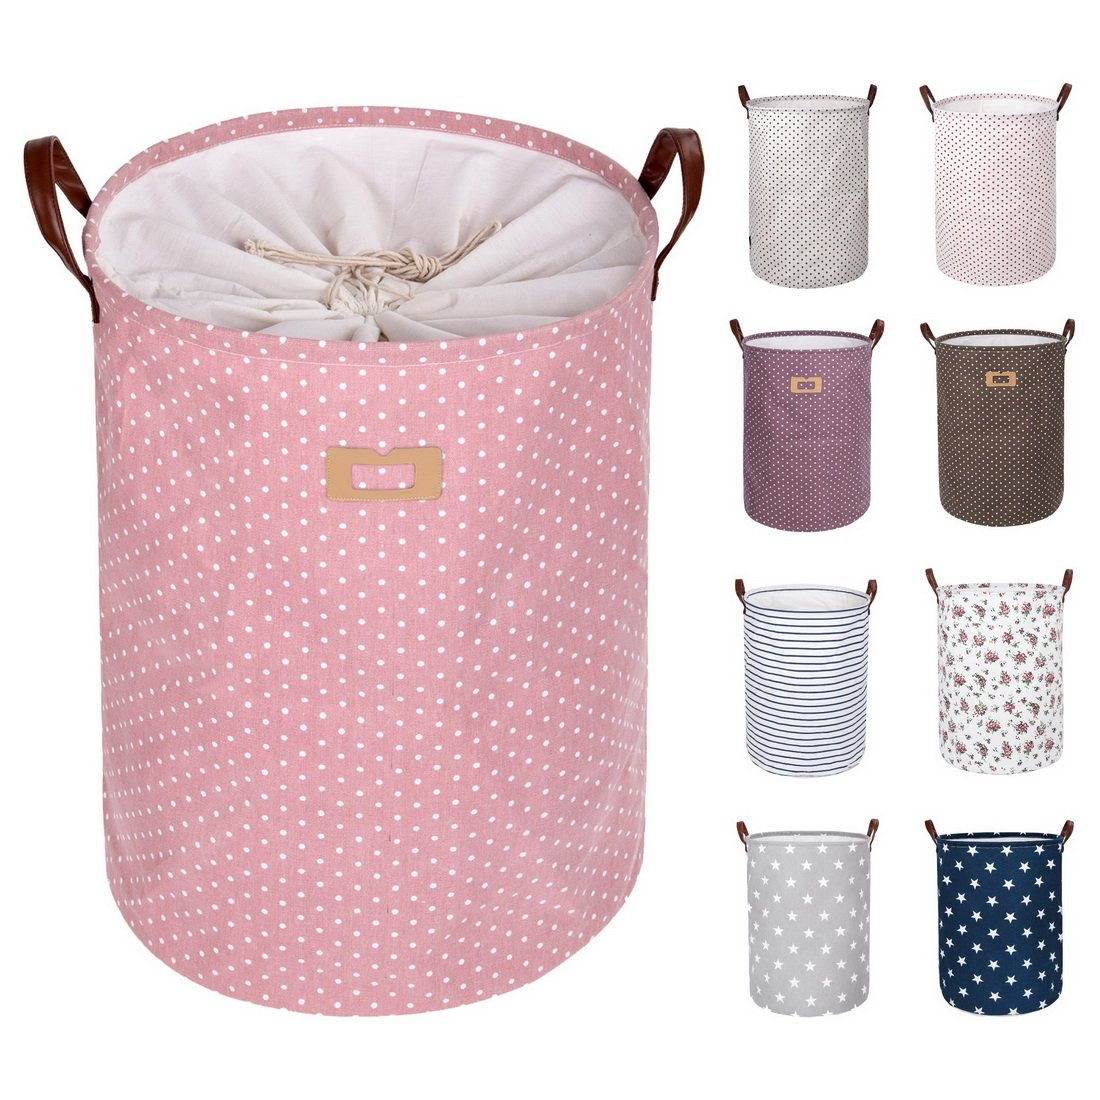 DOKEHOM DKA0822PKXL 22'' Thickened X-Large Laundry Basket -(9 Colors, 19'' and 22'')- with Durable Leather Handle, Waterproof Round Cotton Linen Collapsible Storage Basket (Pink, XL)